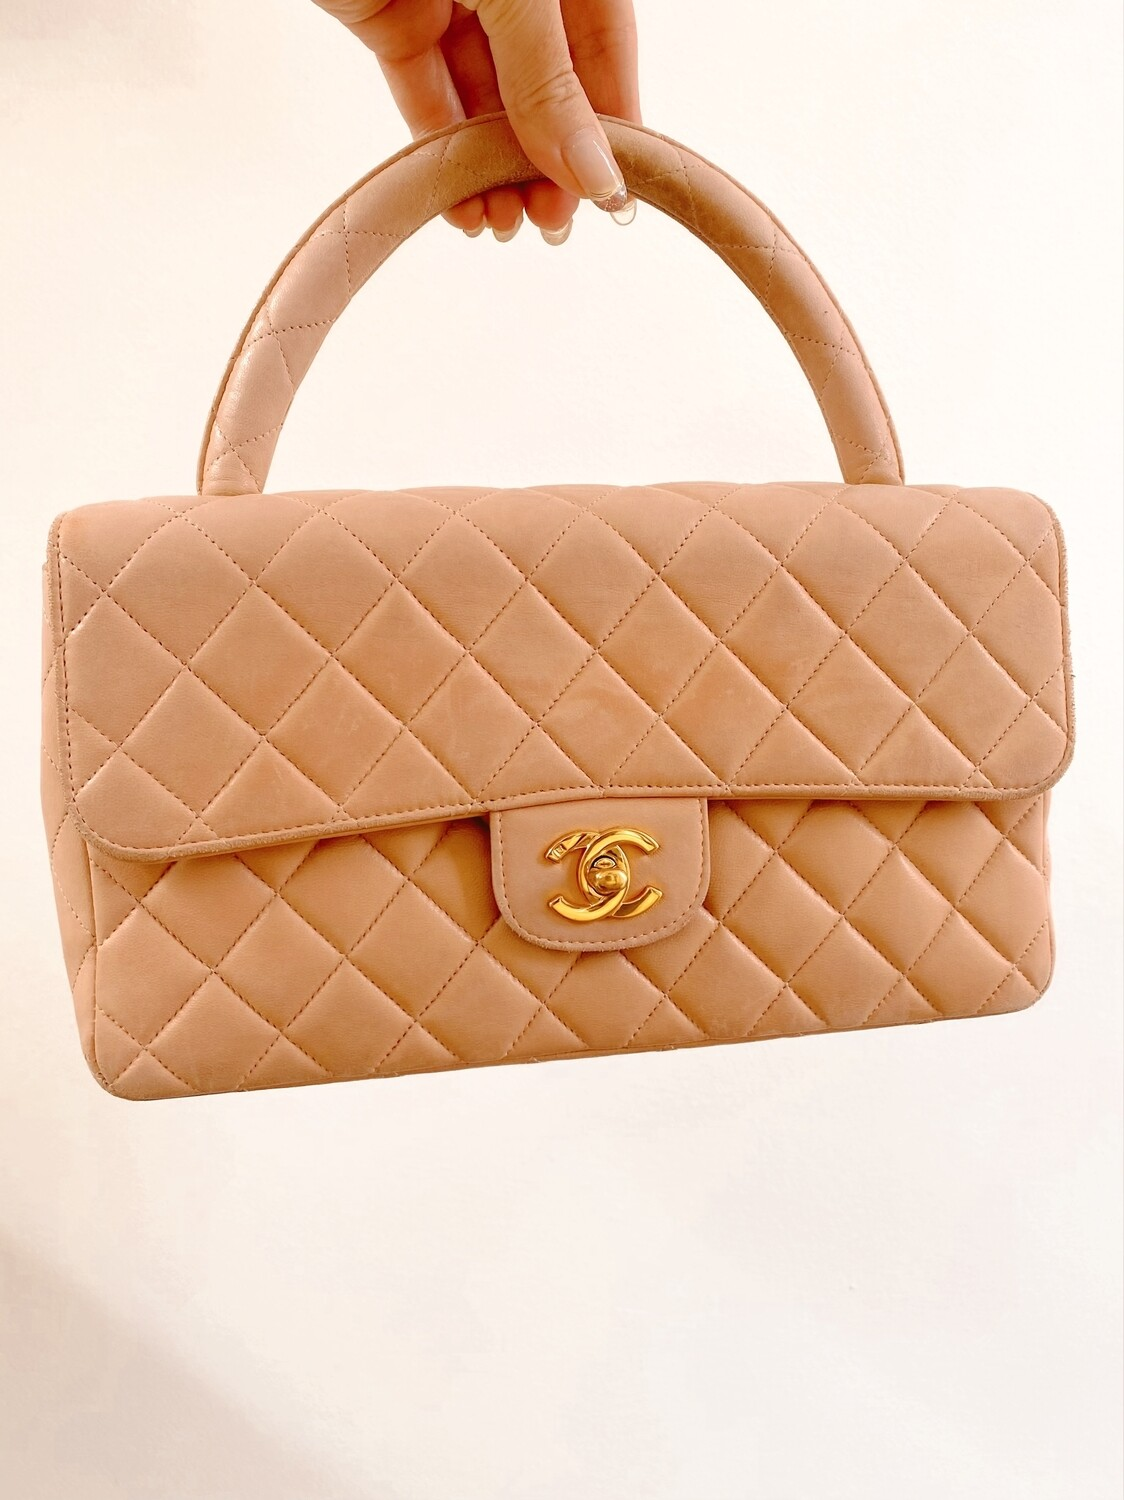 CHANEL TOP HANDLE PEACH METALASSE QUILTED LEATHER TOP HANDLE FLAP BAG